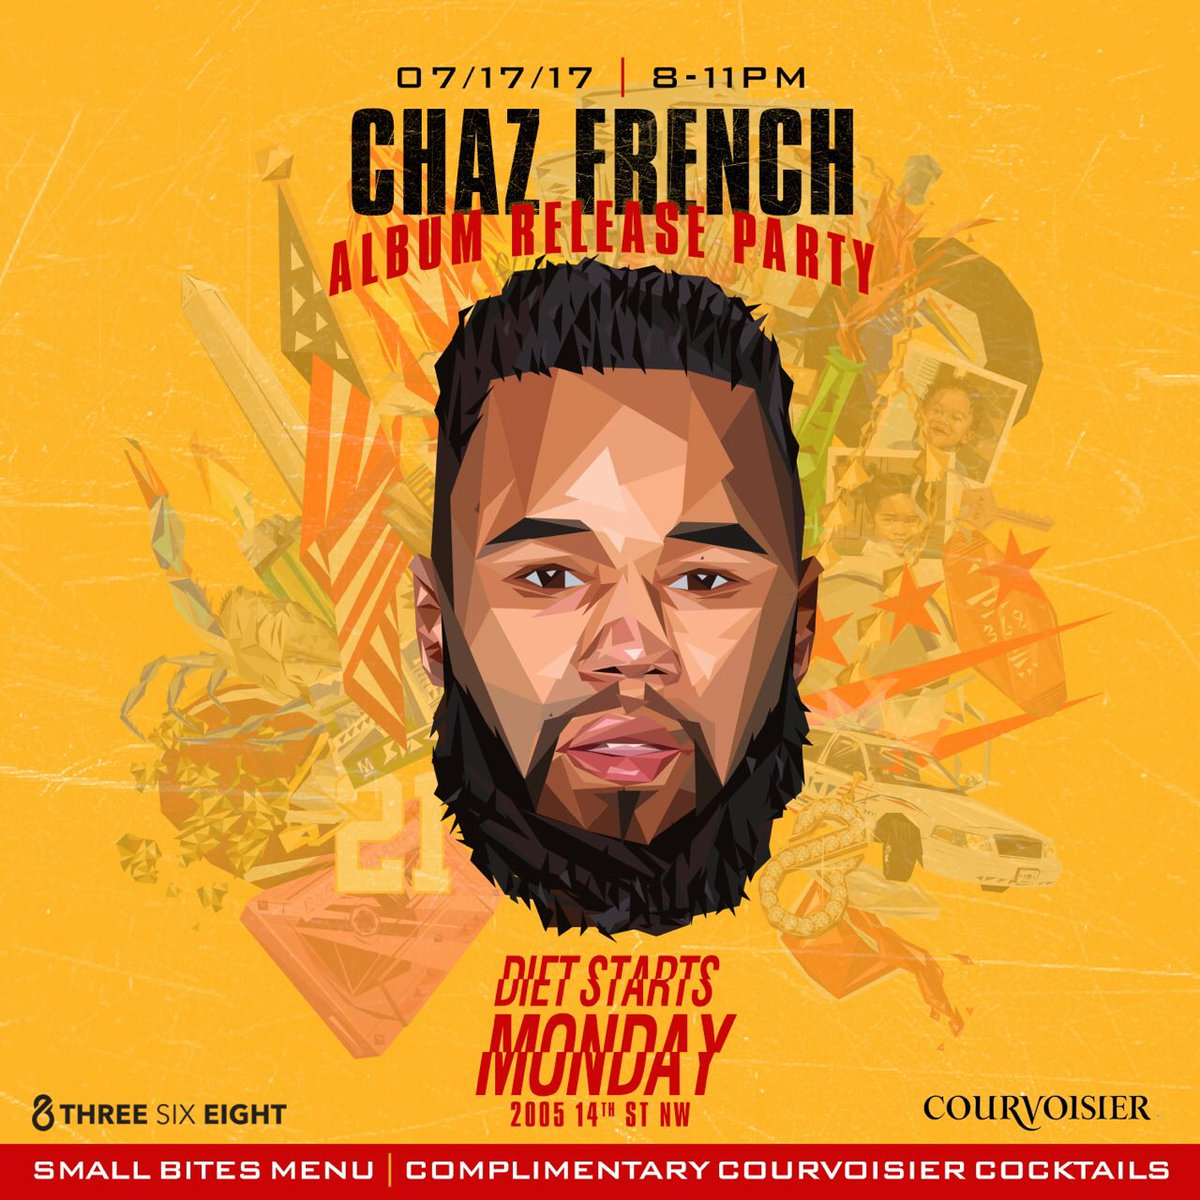 Join us Monday at @dietstartsmon__ for the official @ChazFrenchMusic True Colors album release party ! https://t.co/j3lSOT7yuk